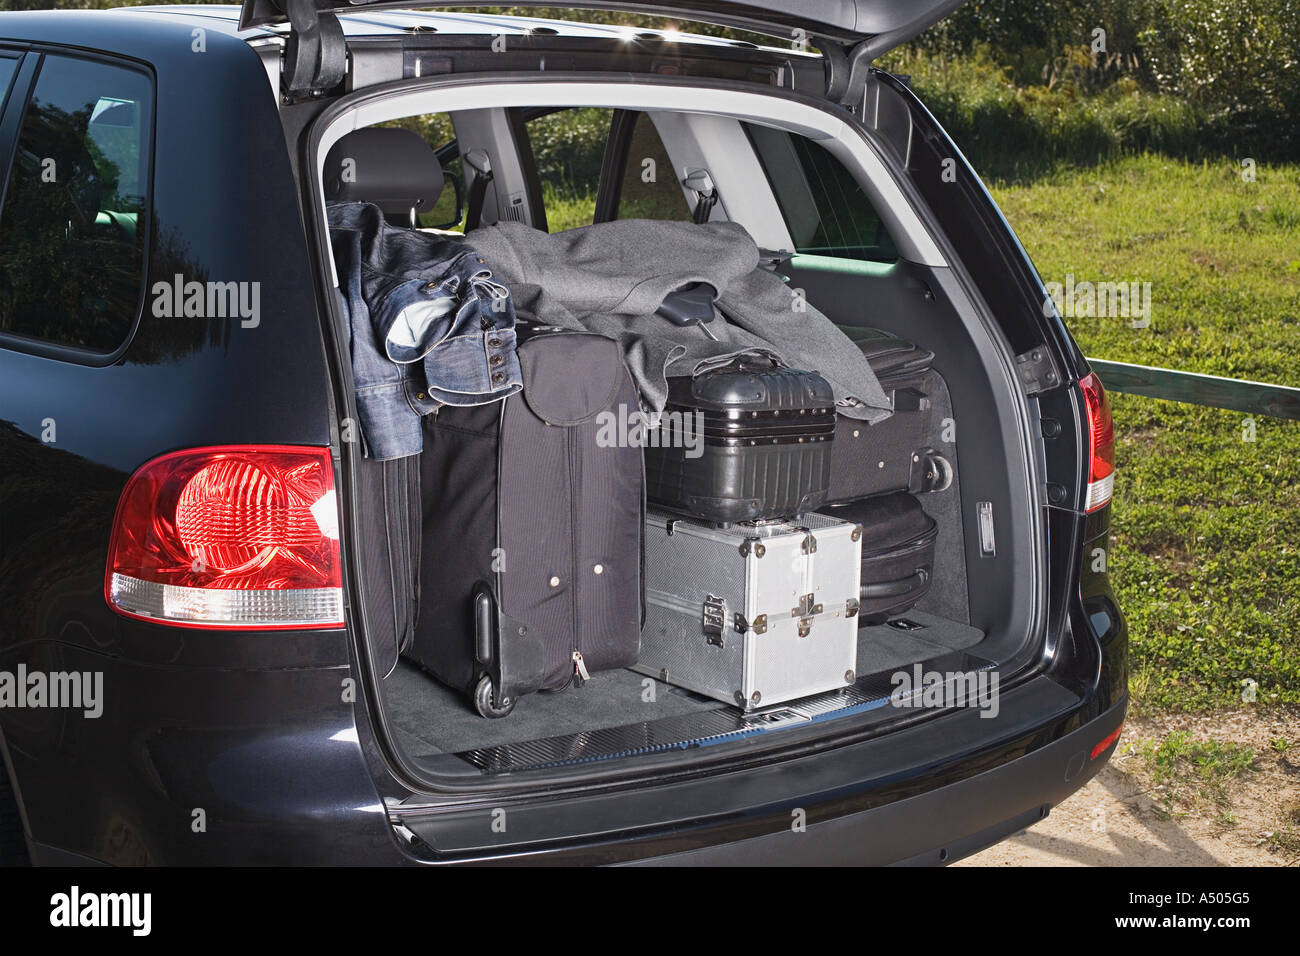 Luggage in a car boot - Stock Image